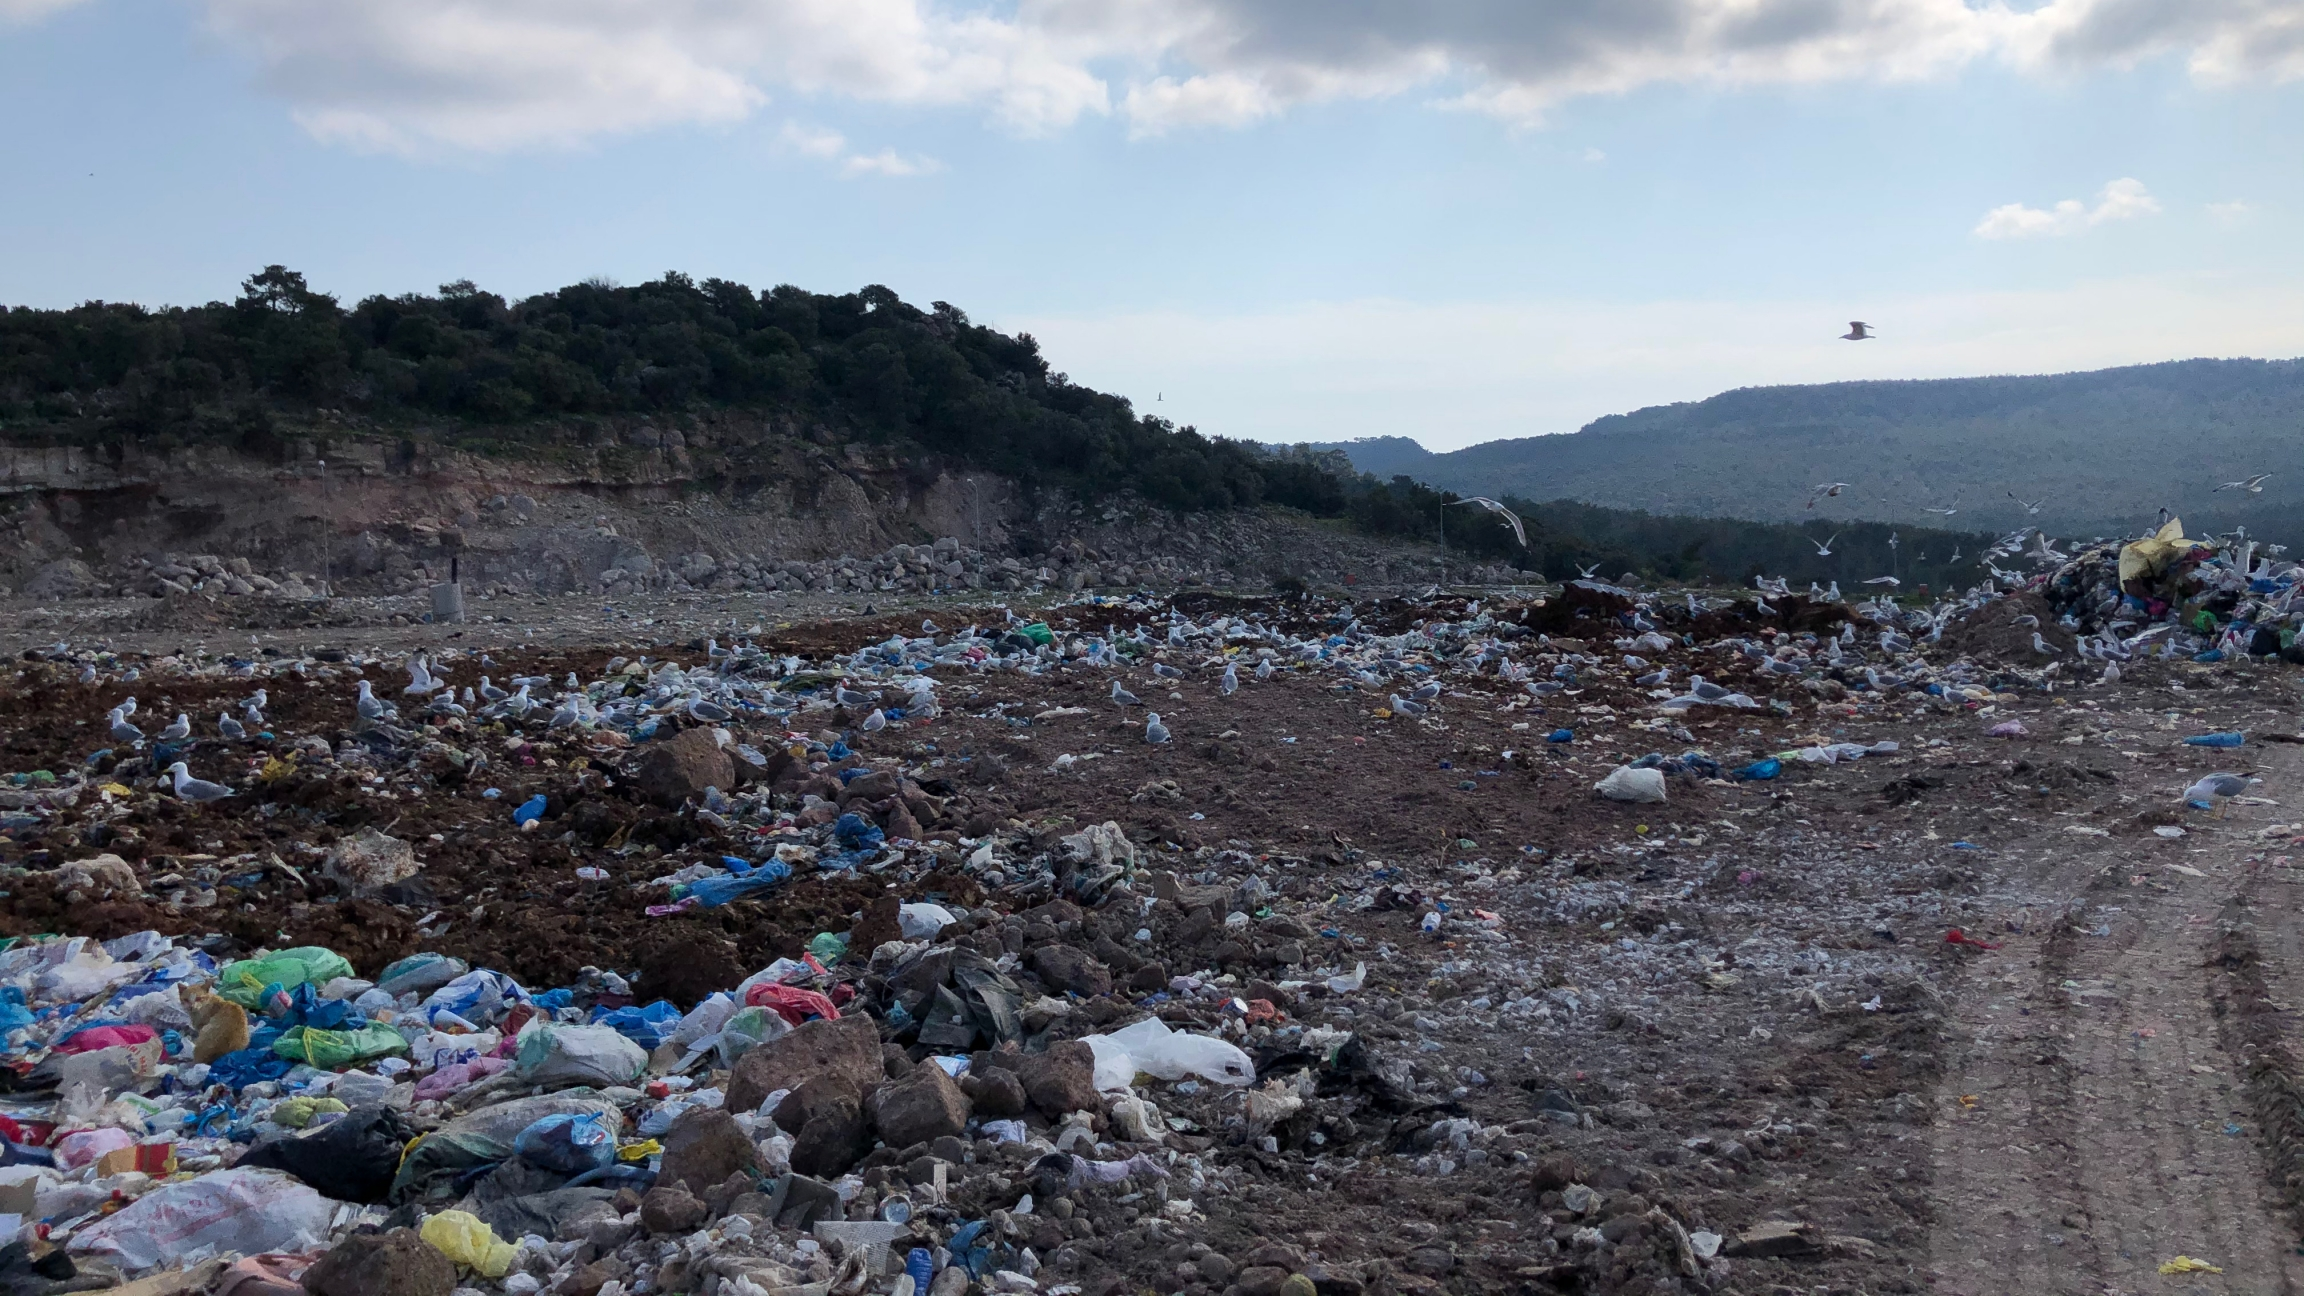 The new migrant facility on Lesbos will be built next to an active landfill, according to a map published by local media in the fall.